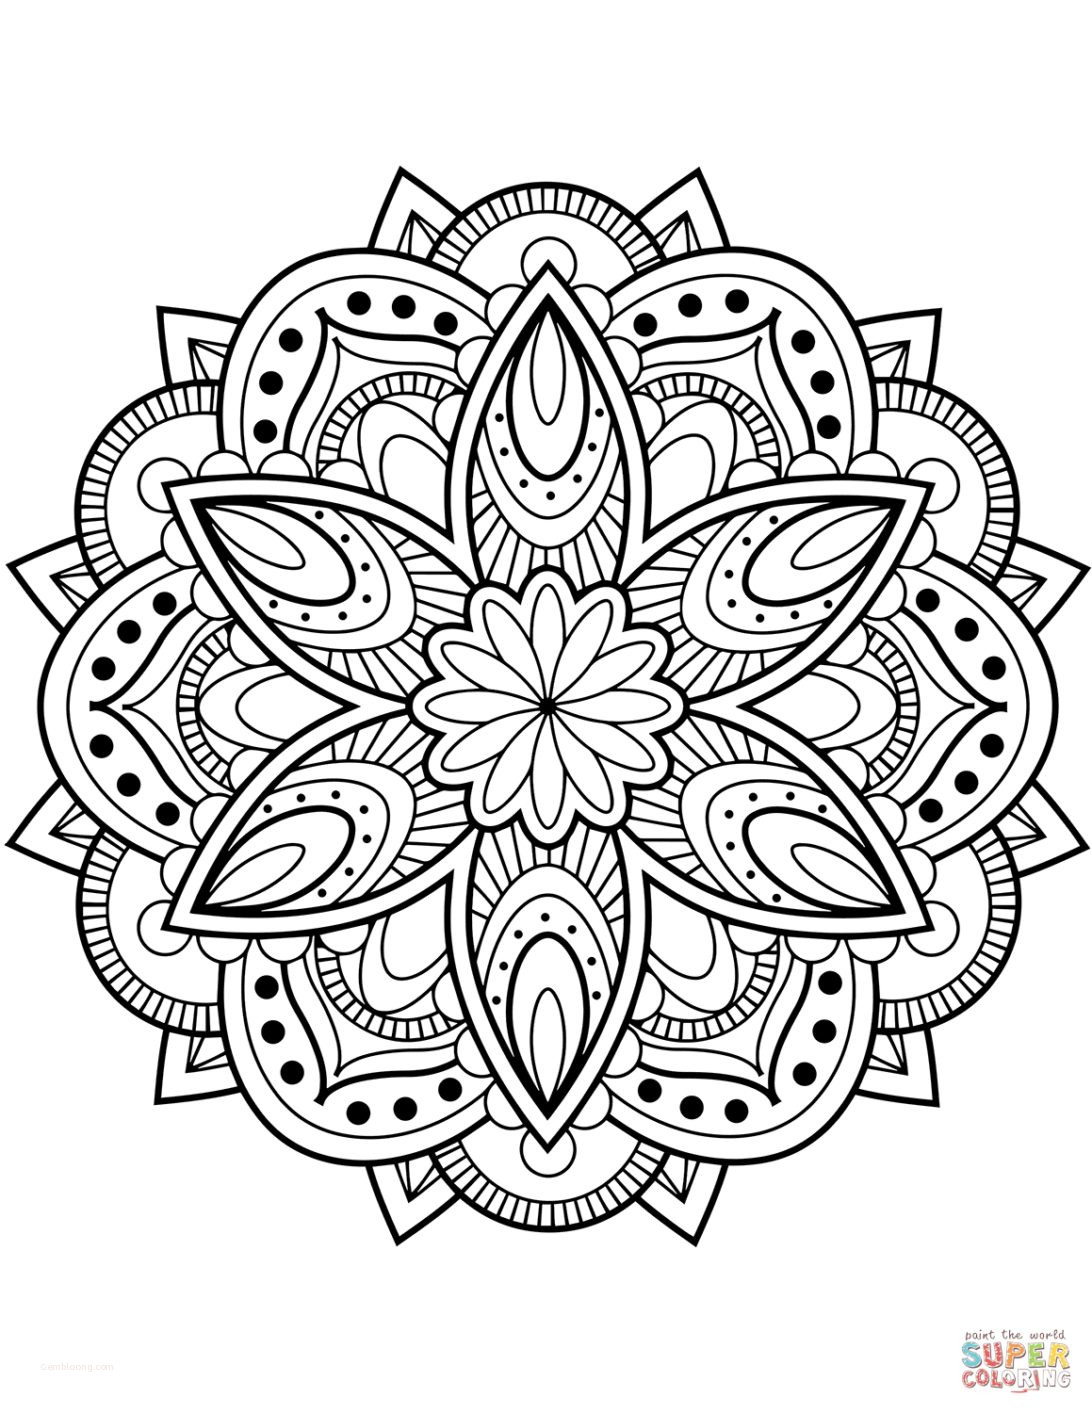 Coloring Pages Mandala Coloring Pages Free Printable Awesome Coloring Pages Free Printable Mandalas Meditation Coloring Mandala Coloring Pages Free Printable Peak Coloring Home